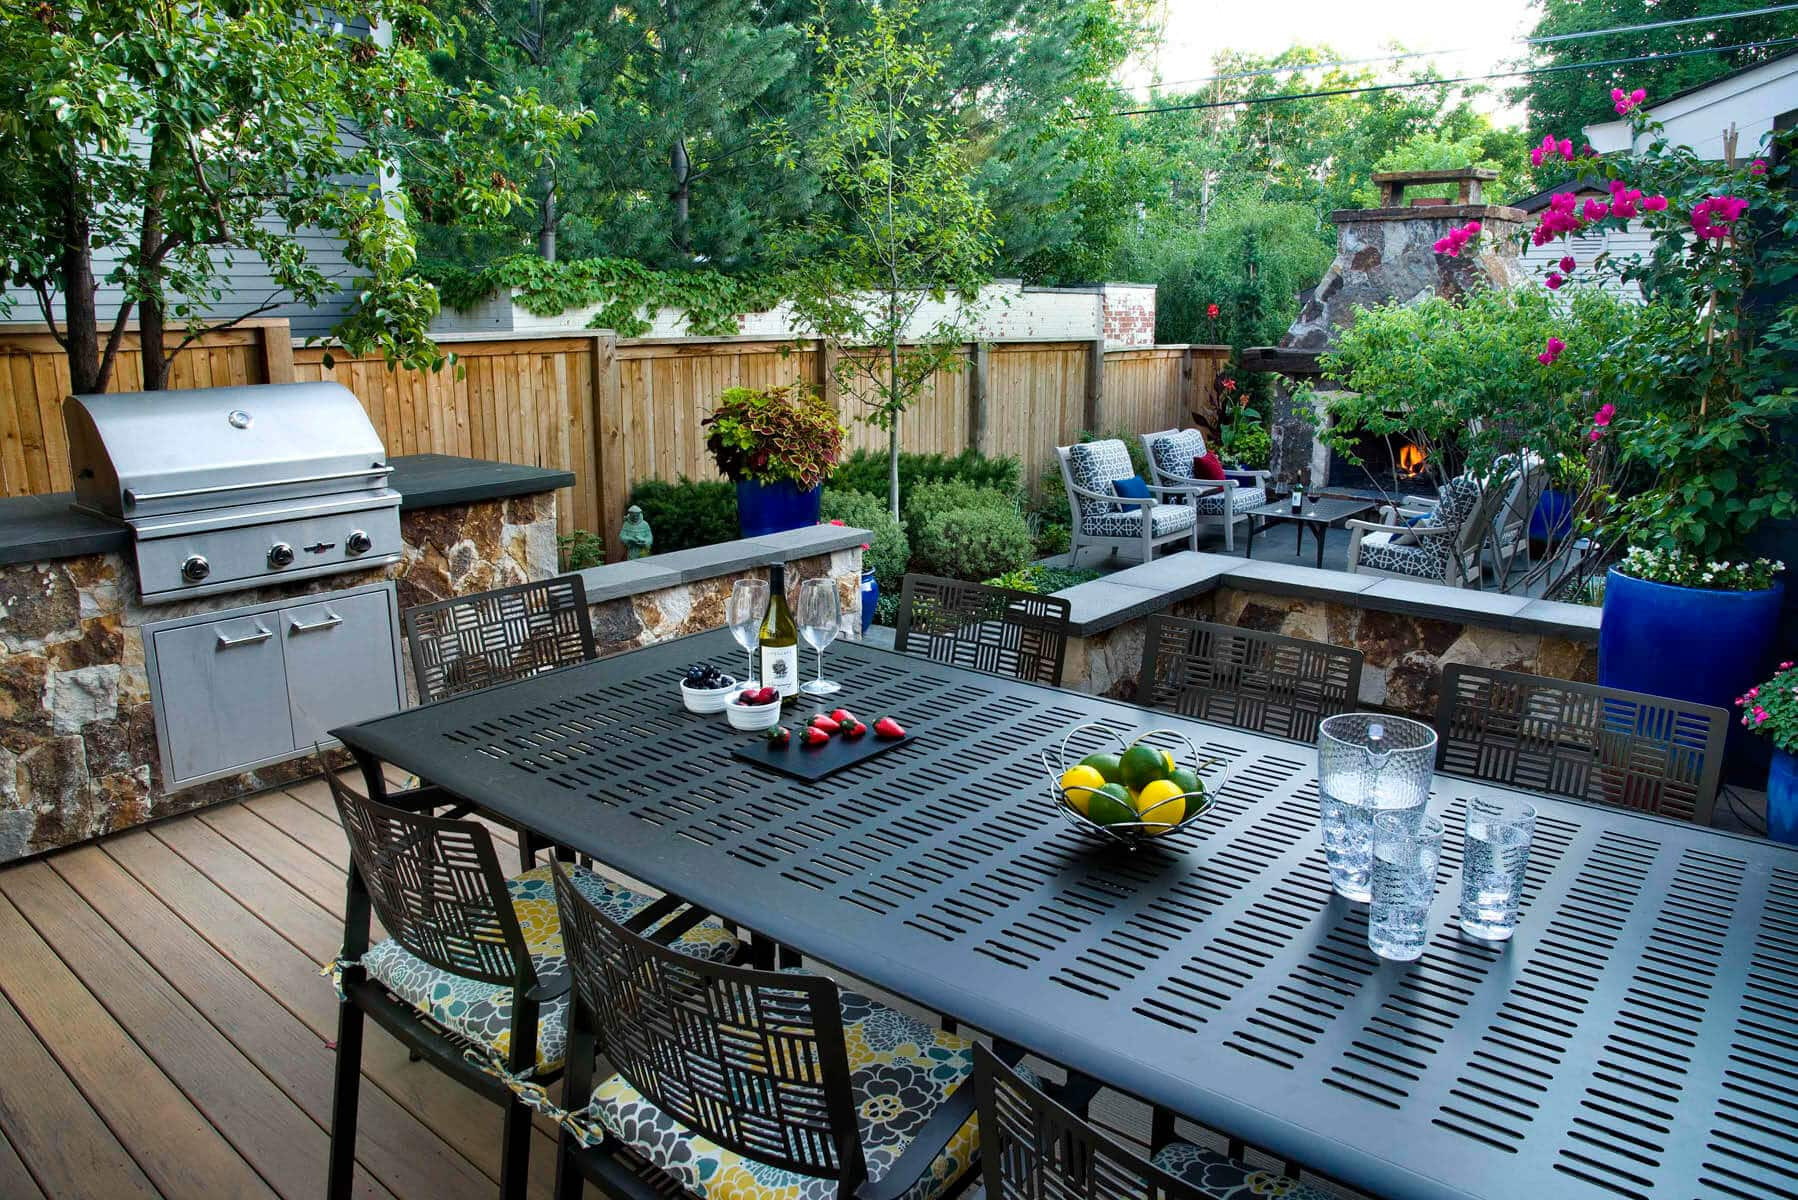 Blog Featured – Cook up some fun with an Outdoor Kitchen upgrade this year!